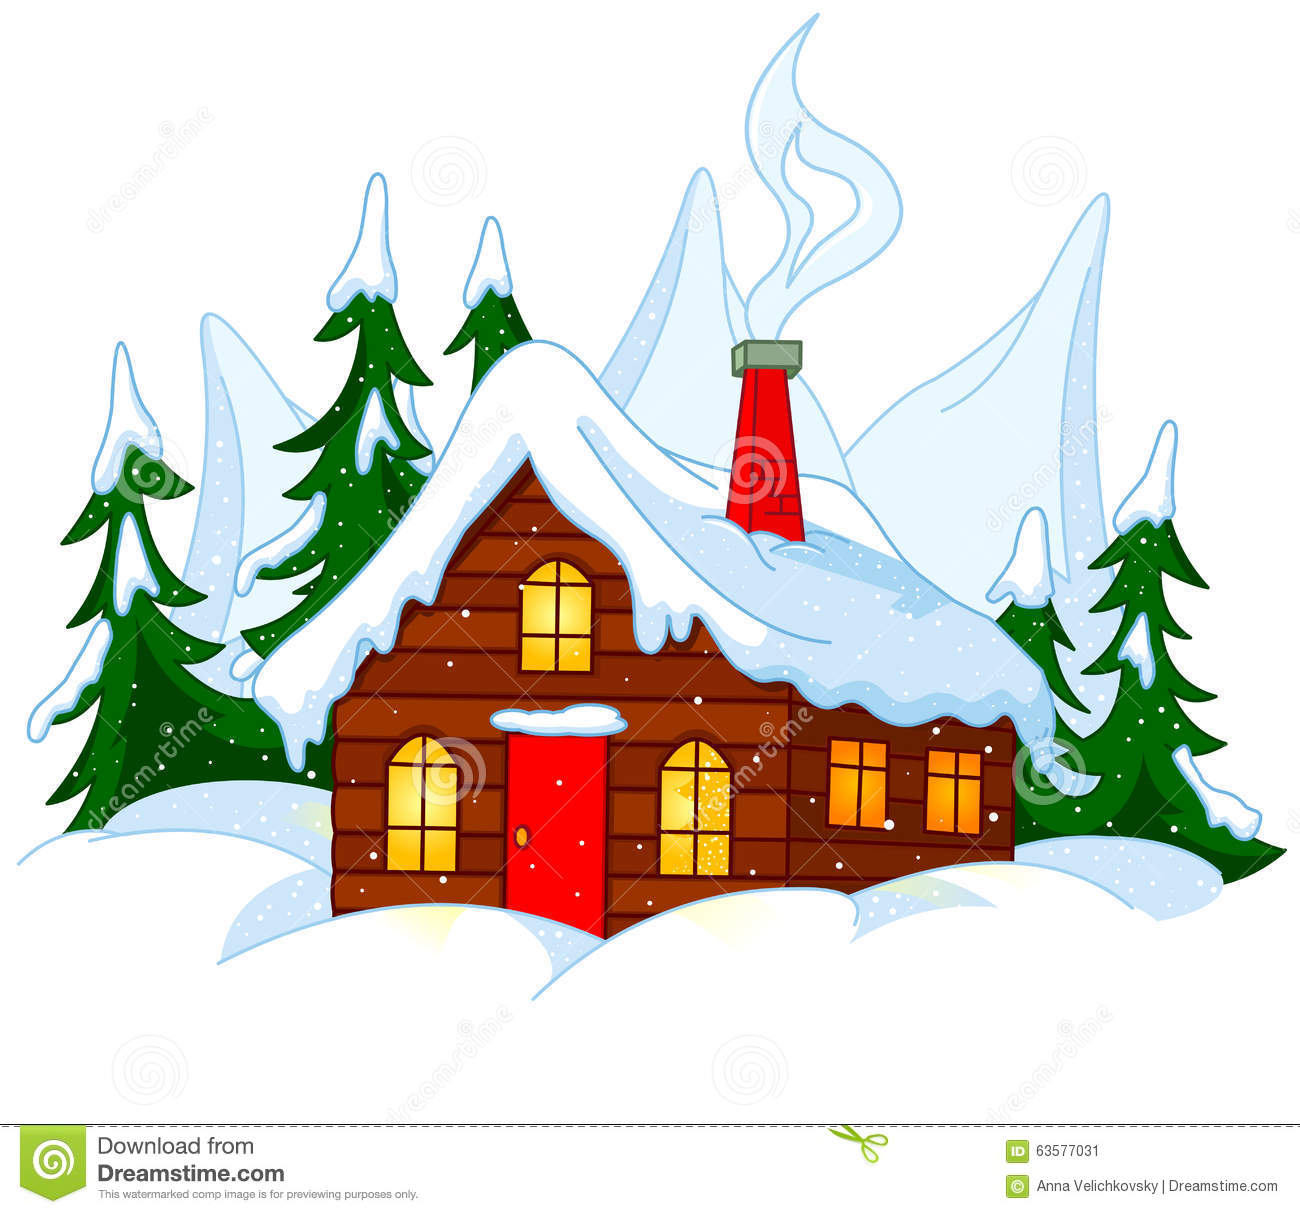 Christmas house with snow art - Forest House Illustration Snow Sky Hill Building Xmas